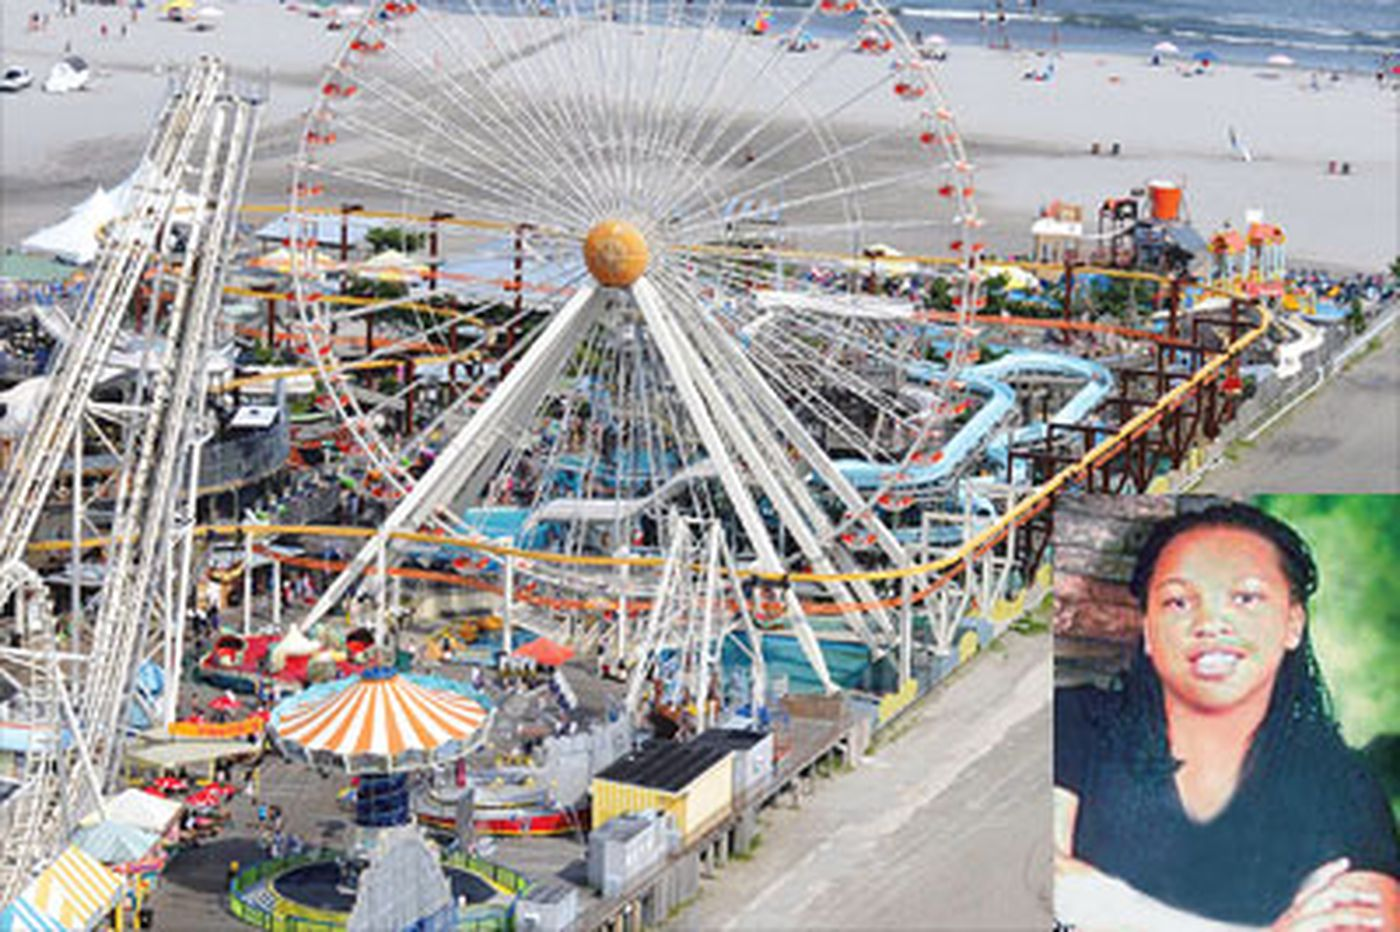 Horror in Wildwood as girl, 11, falls to her death